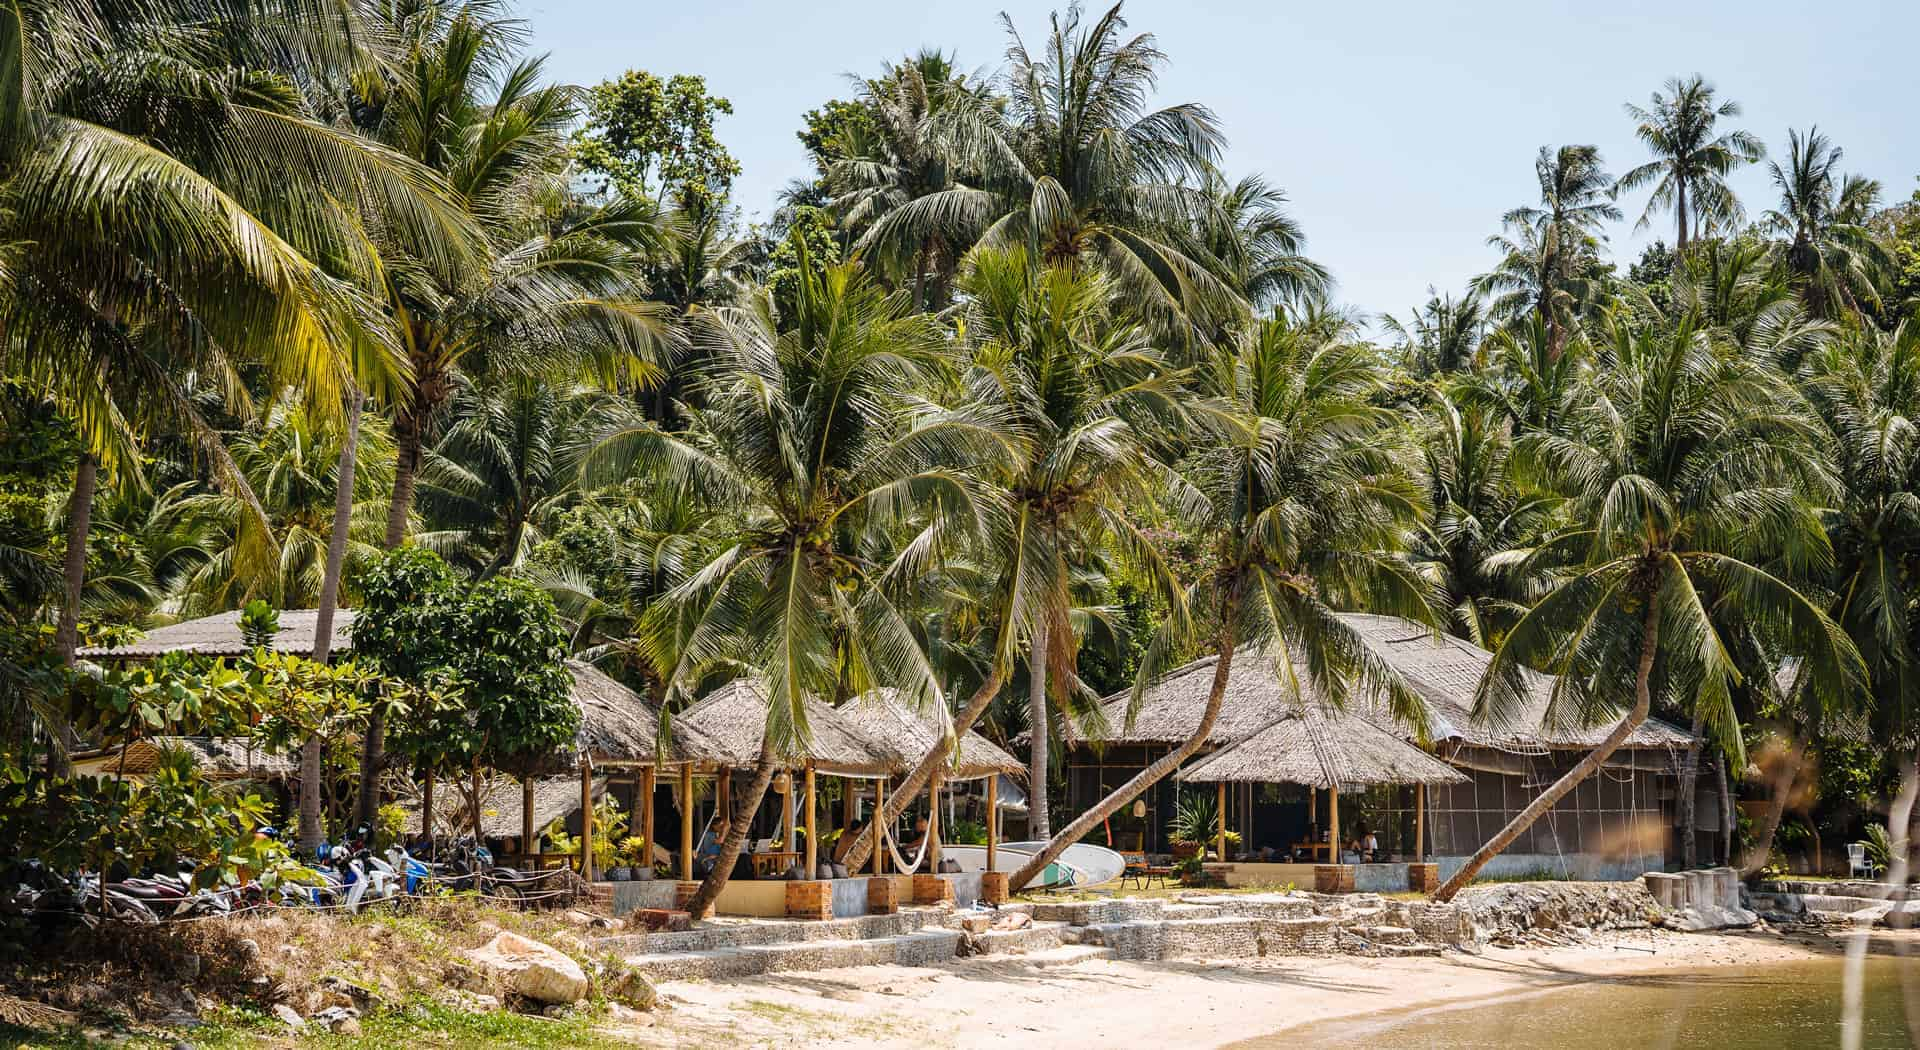 Orion Healing Center and beach in Koh phangan